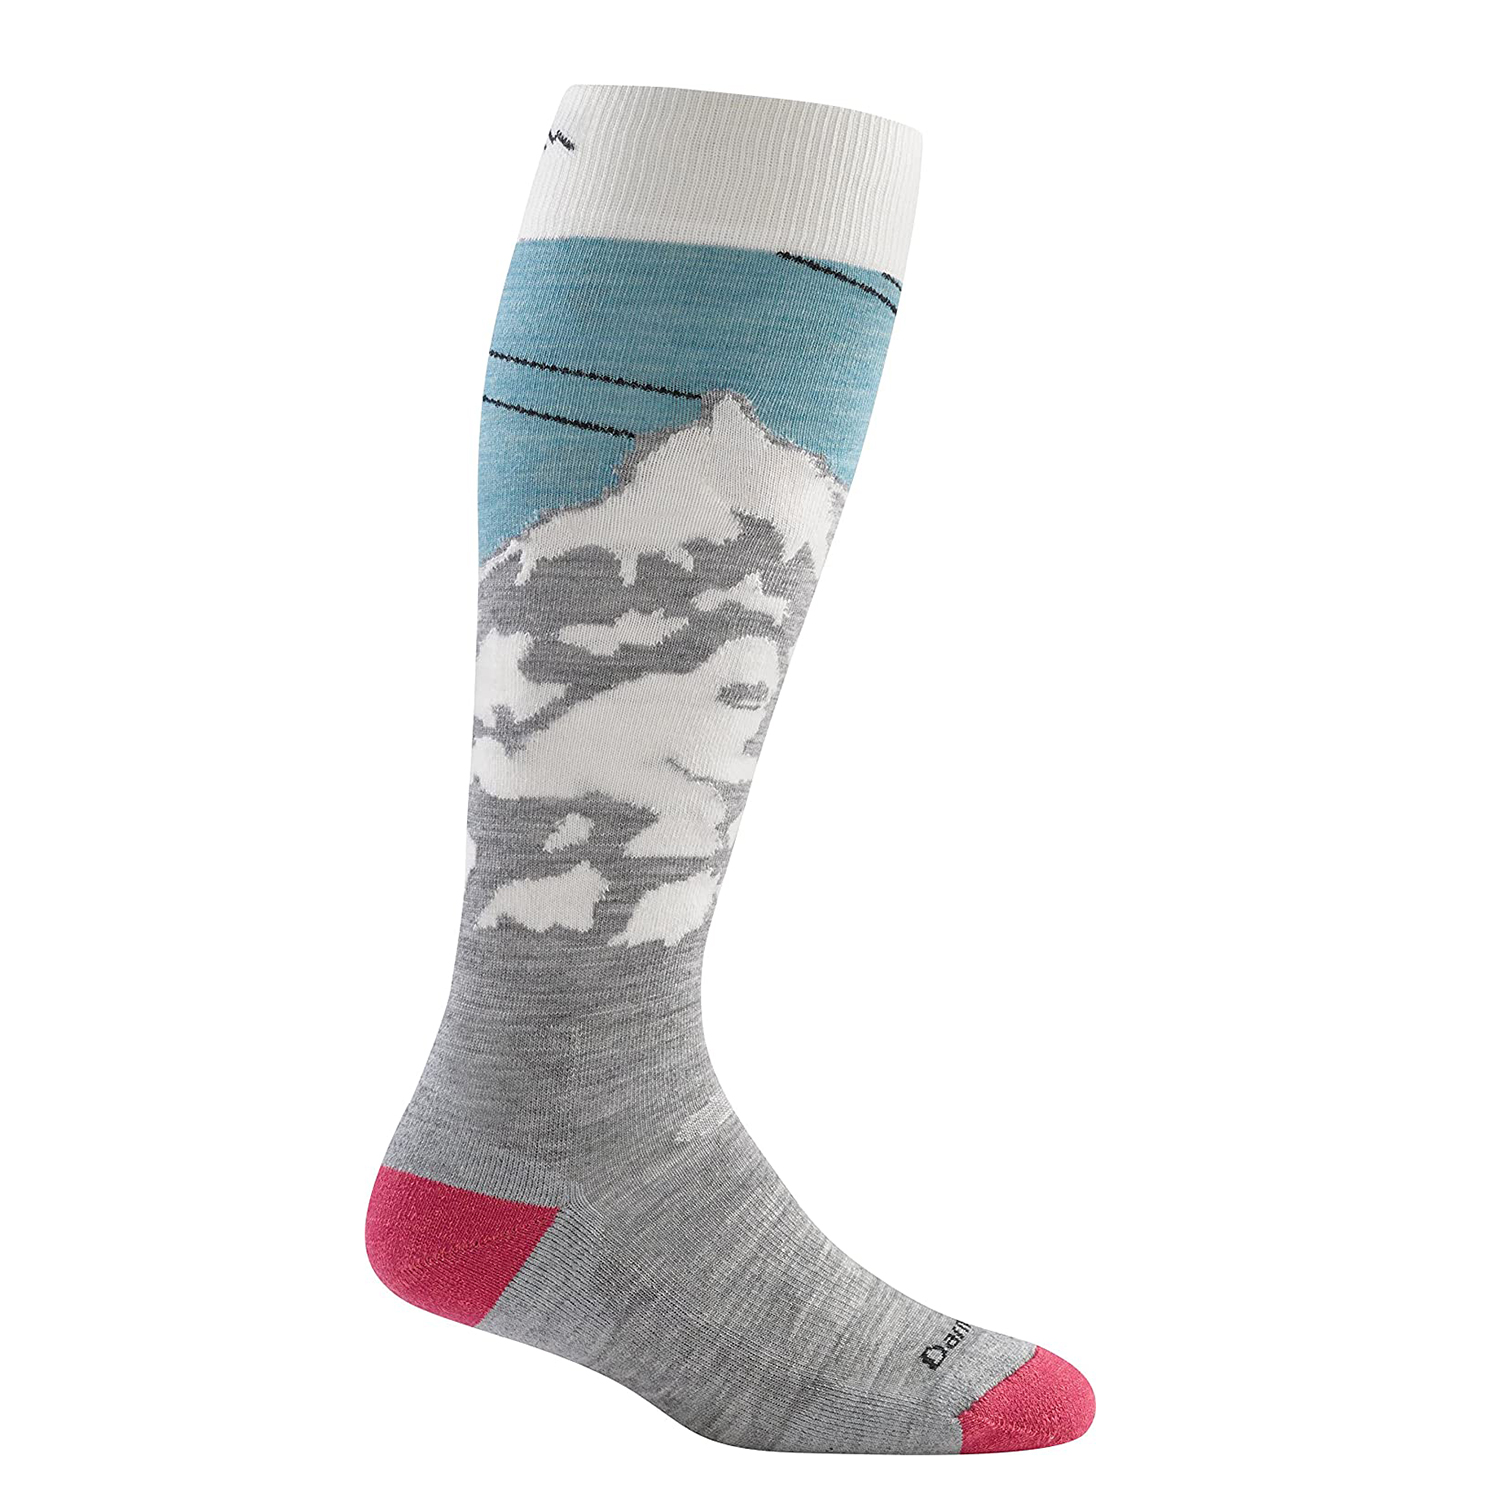 Darn Tough Yeti Over The Calf Light Socks